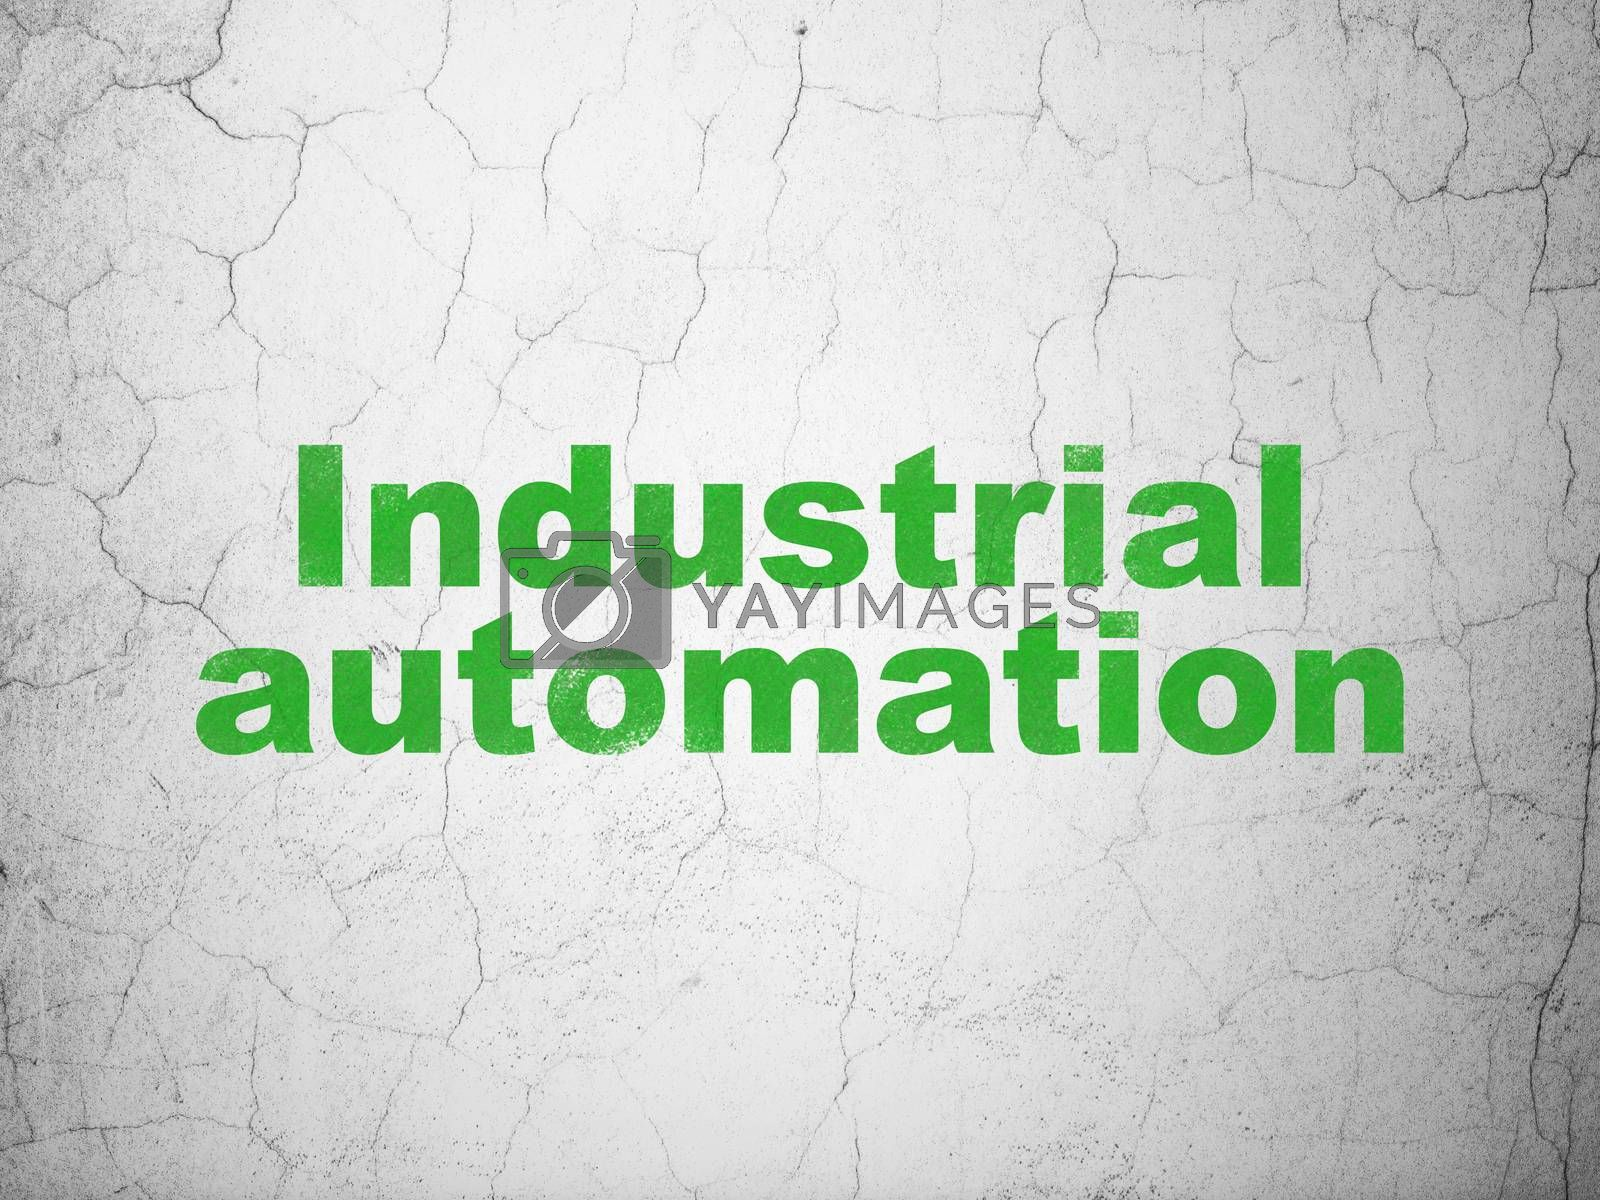 Industry concept: Green Industrial Automation on textured concrete wall background